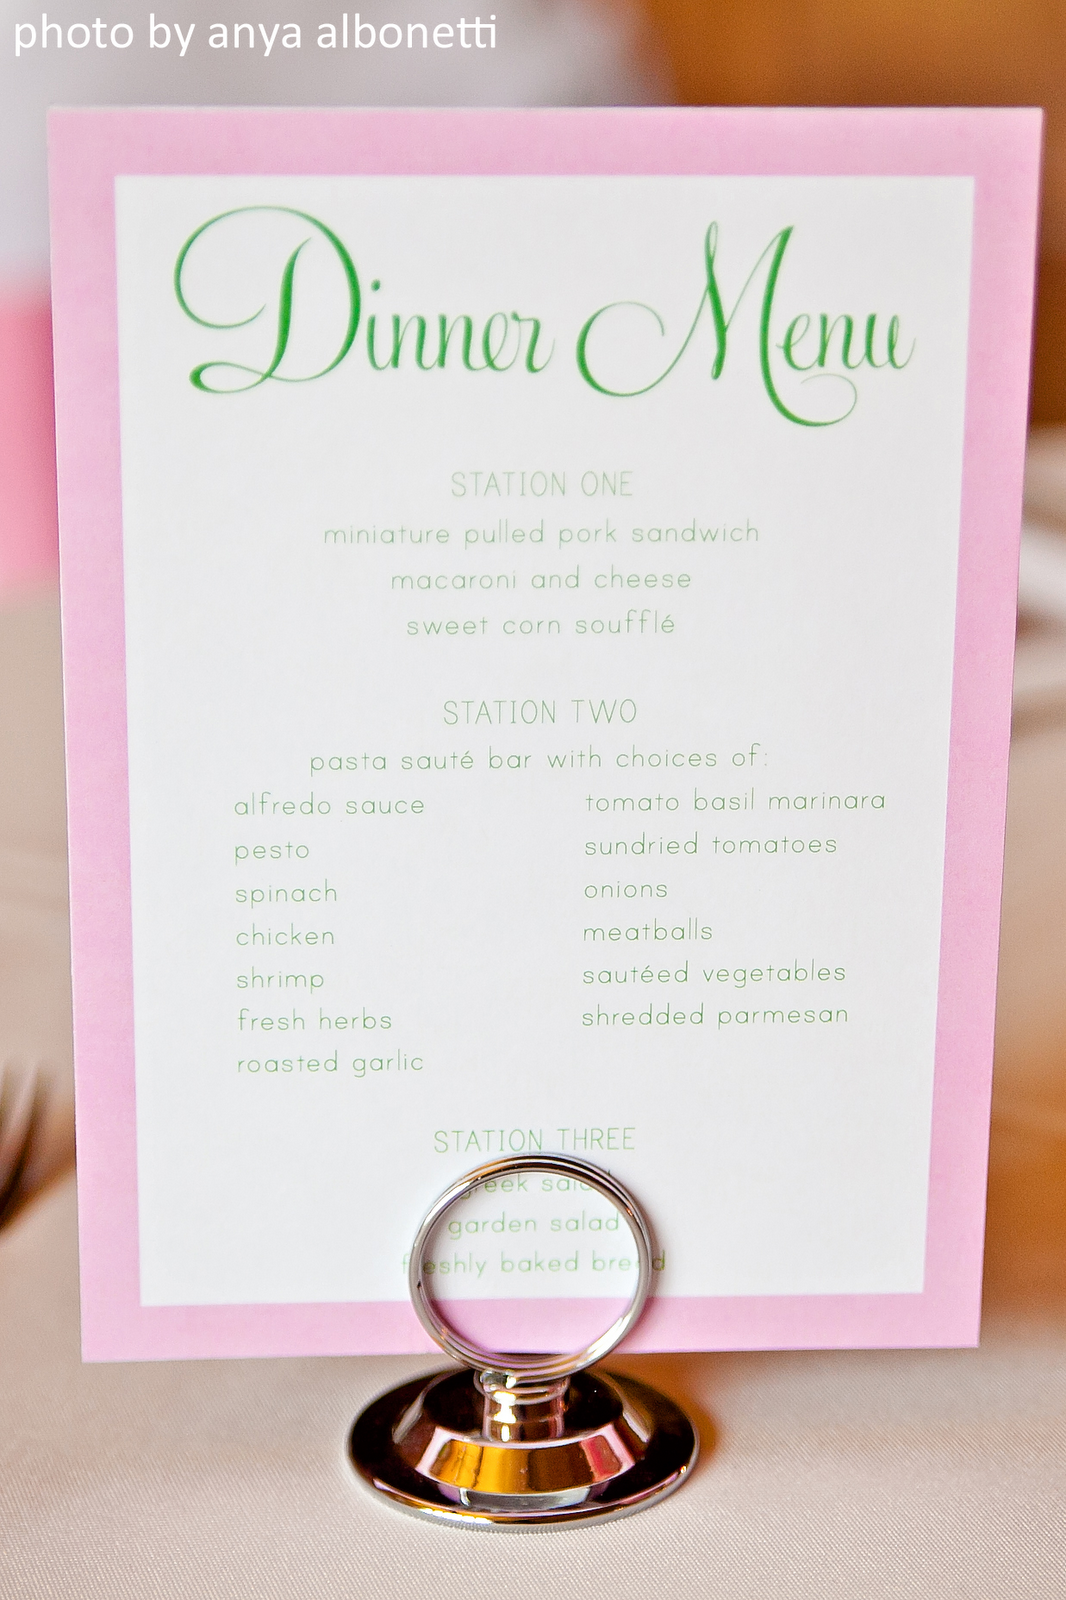 Our wedding reception for Table 6 brunch menu